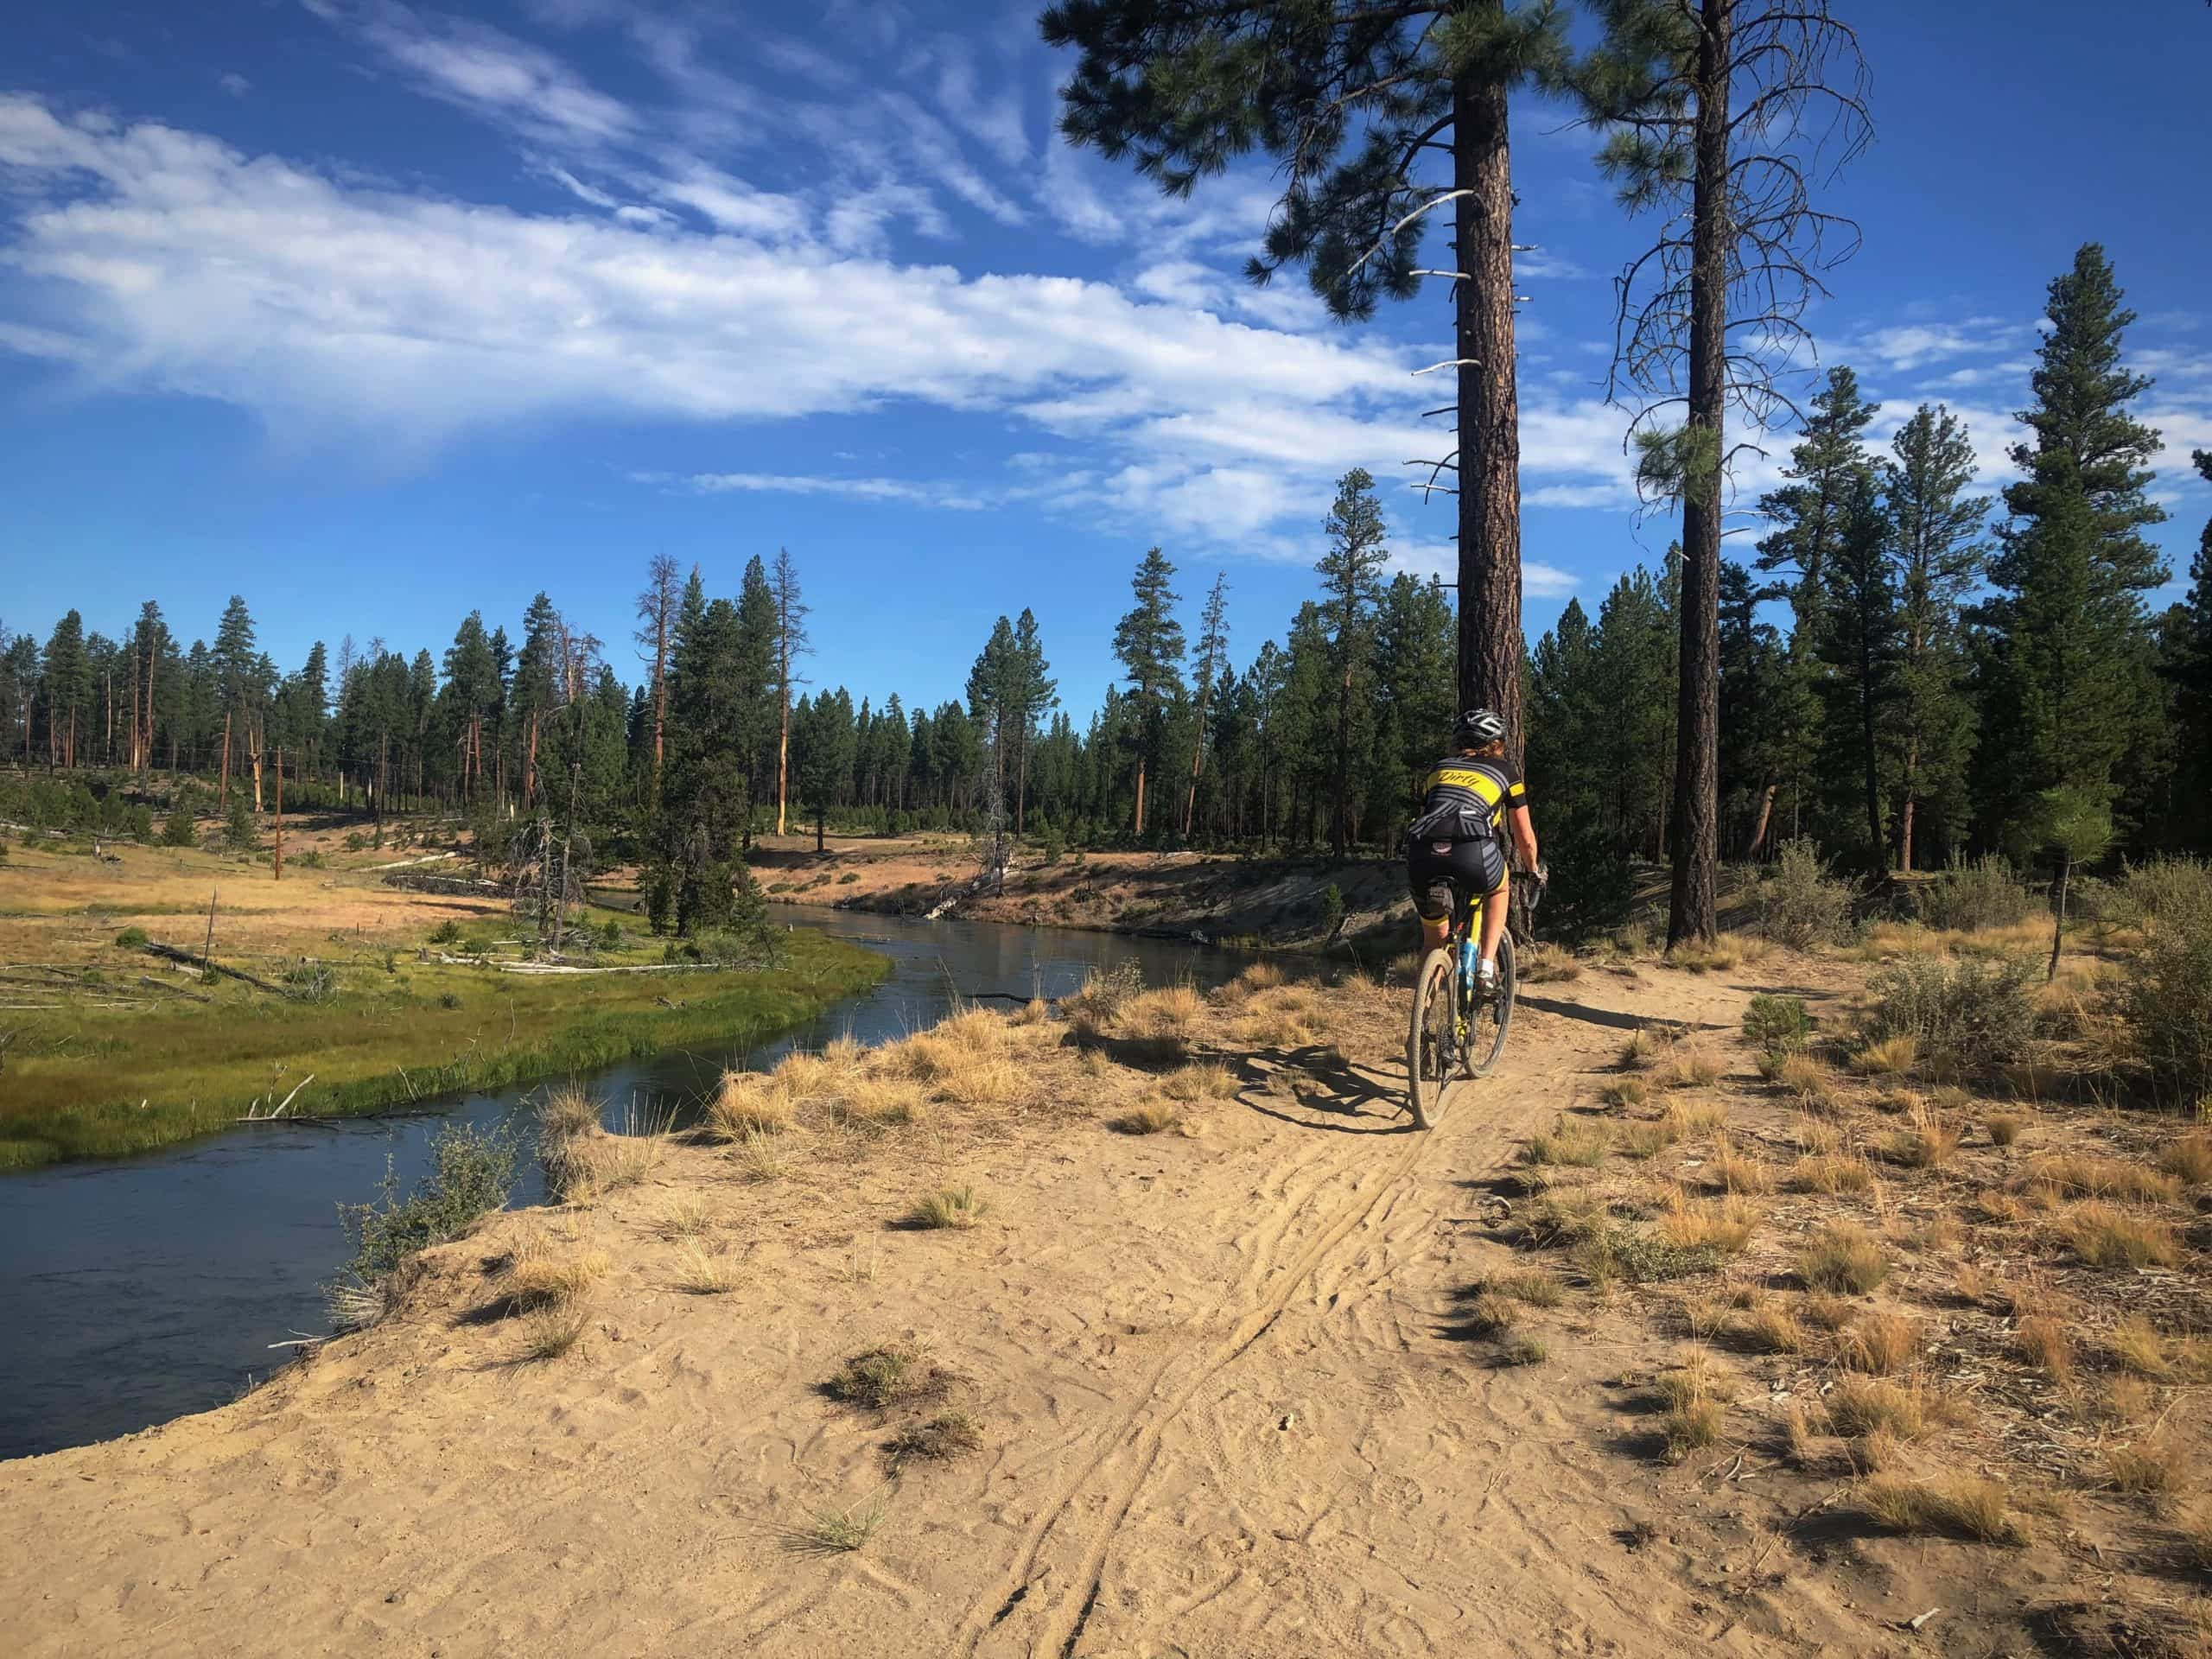 Woman gravel cyclist on dirt trail in LaPine State Park.